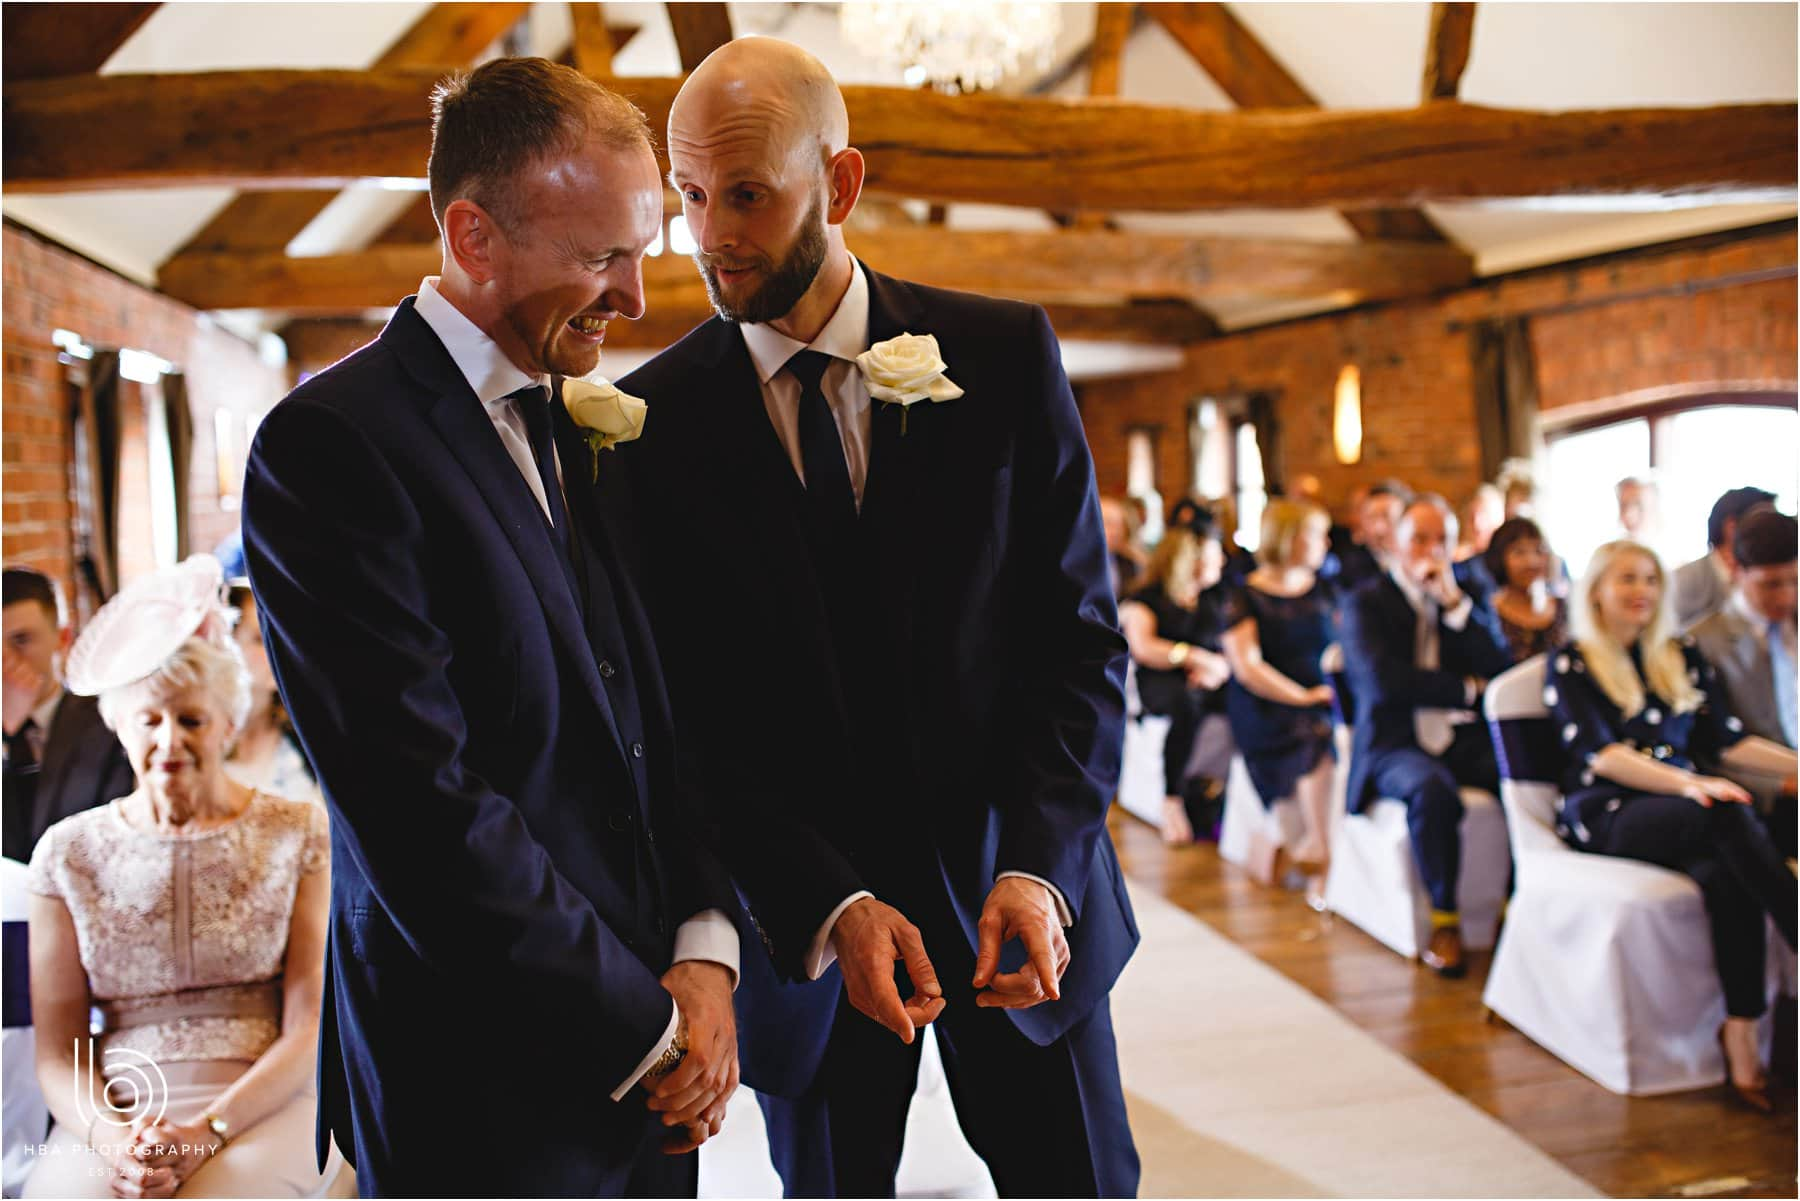 the groom and best man waiting for the bride at Swancar Farm